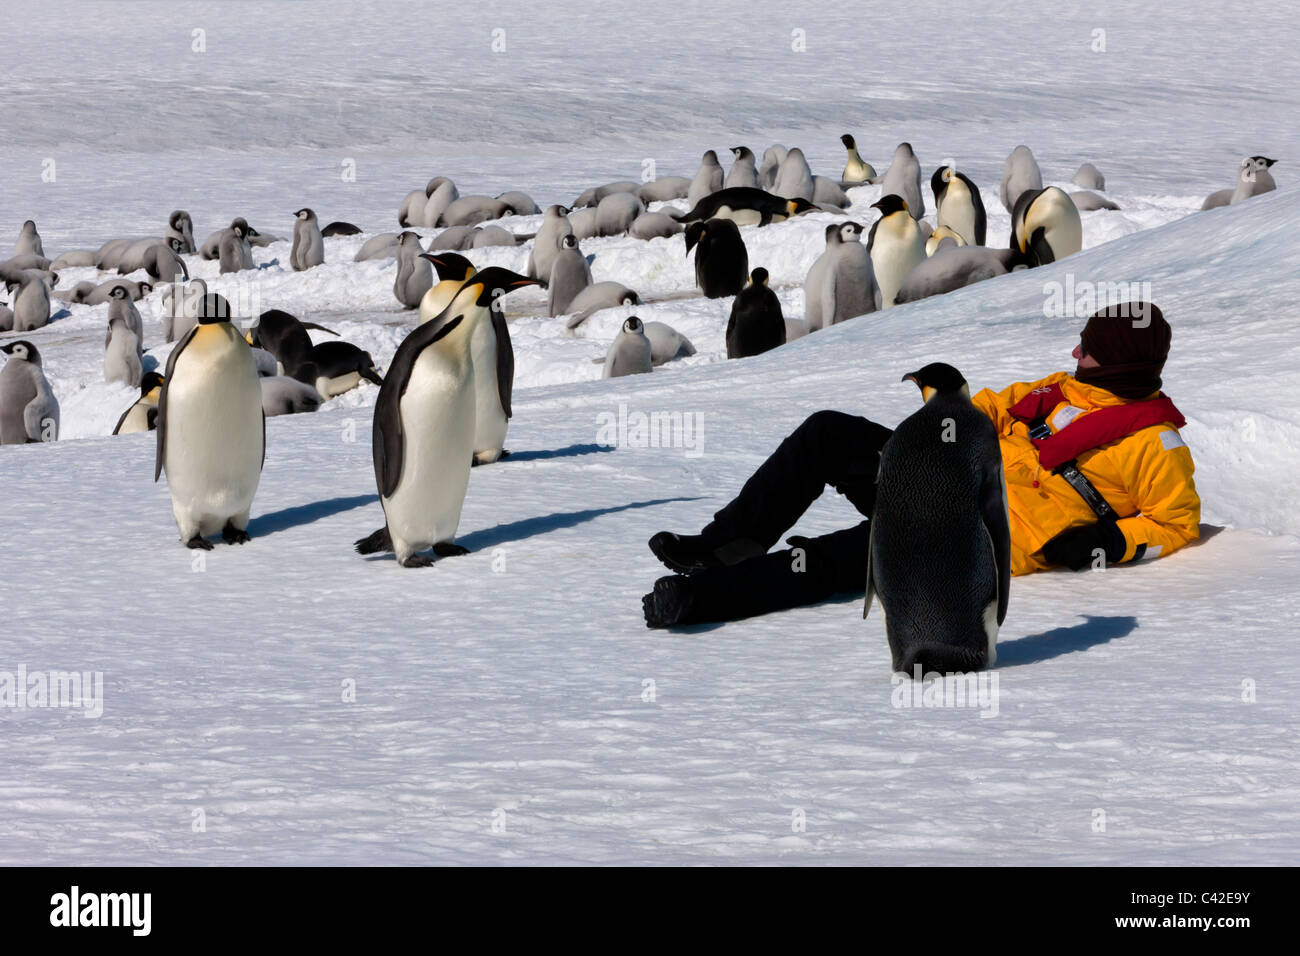 1 Comfortable Male Eco- tourist relaxing on snow surrounded by curious Emperor Penguins at friendly emperor penguin - Stock Image